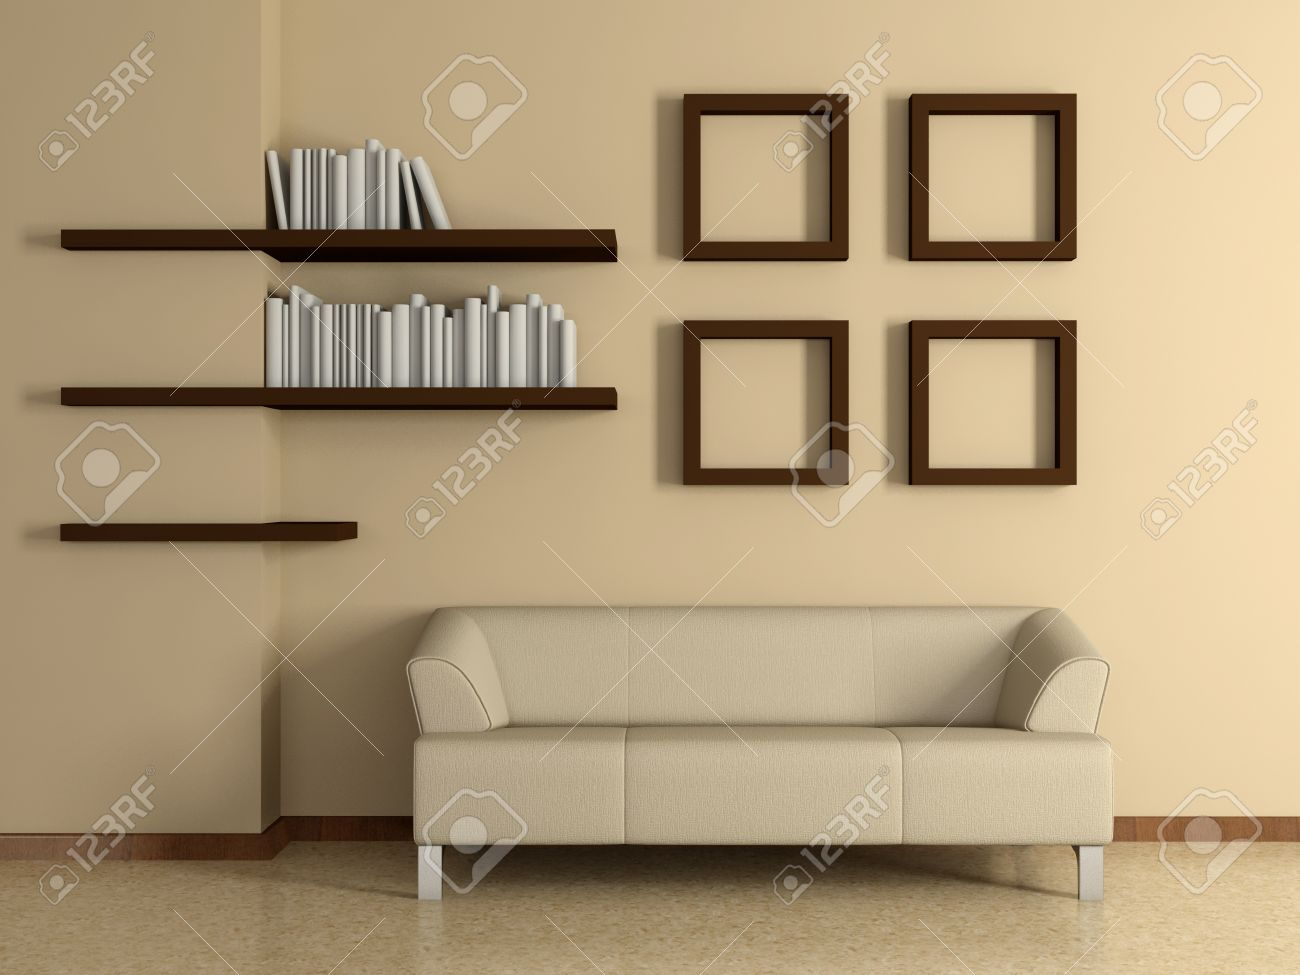 modern home interior with sofa near the beige wall and four modern home interior with sofa near the beige wall and four paintings book shelves